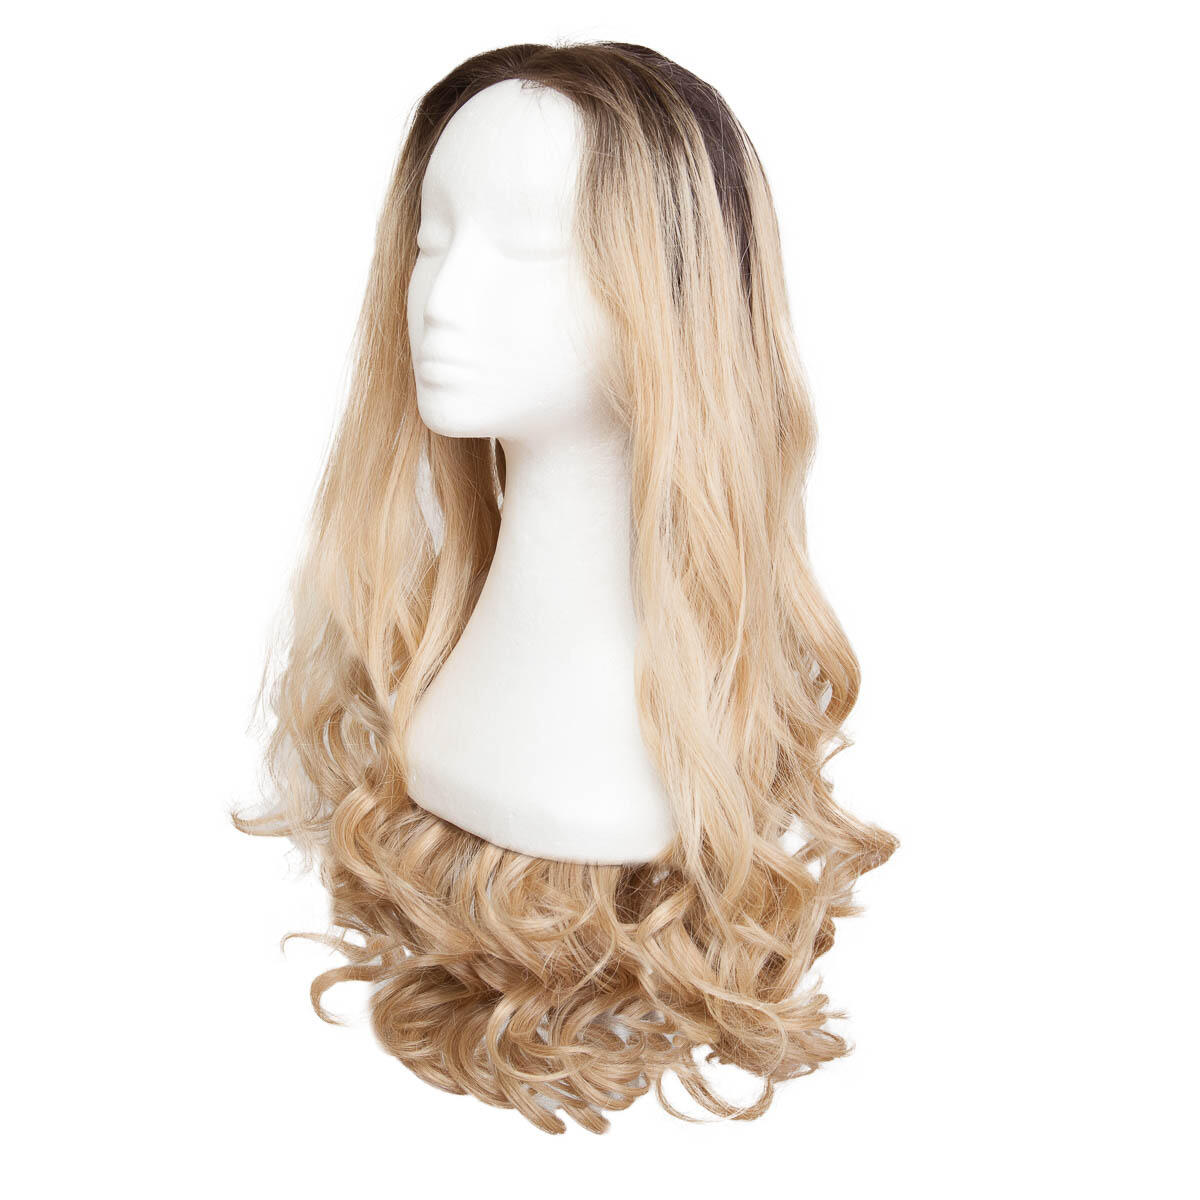 Lace Front Wig O2.3/9.0 Chocolate Brown/Scandinavian Blond 60 cm